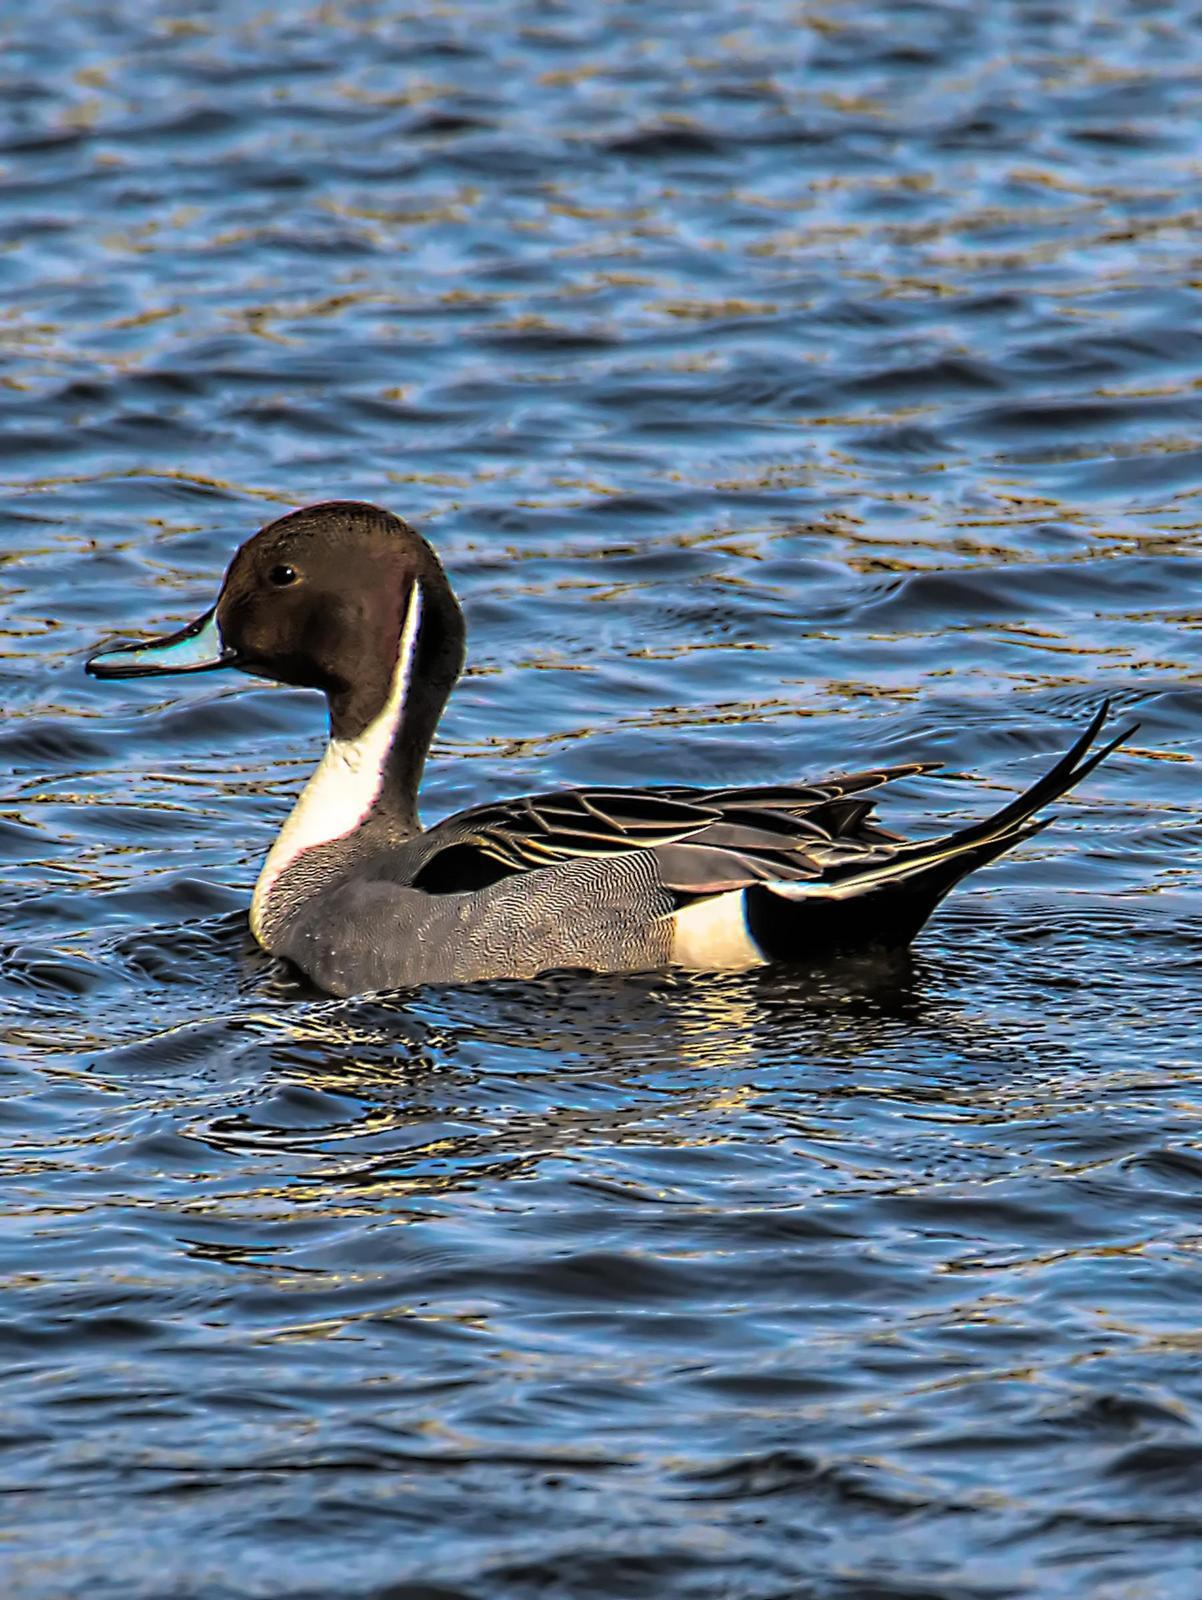 Northern Pintail Photo by Dan Tallman